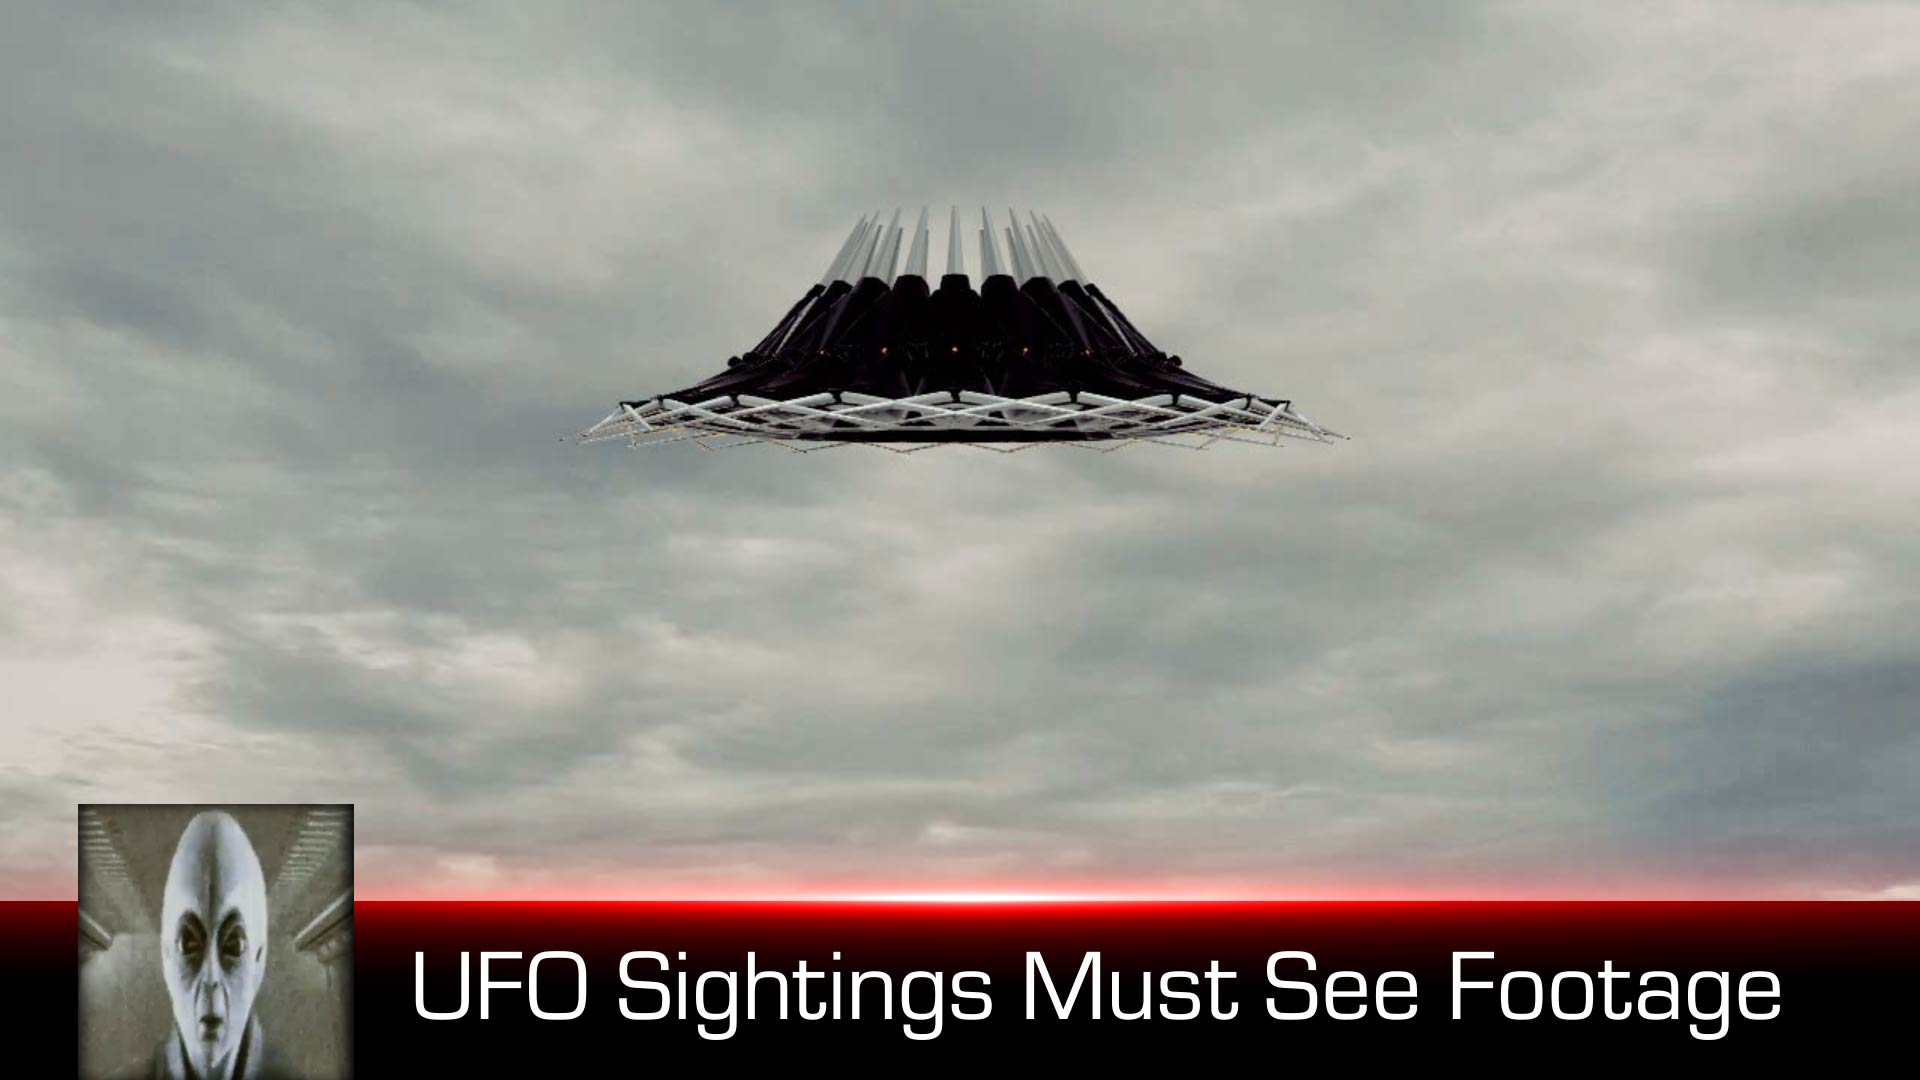 UFO Sightings Must See Footage May 5th 2018